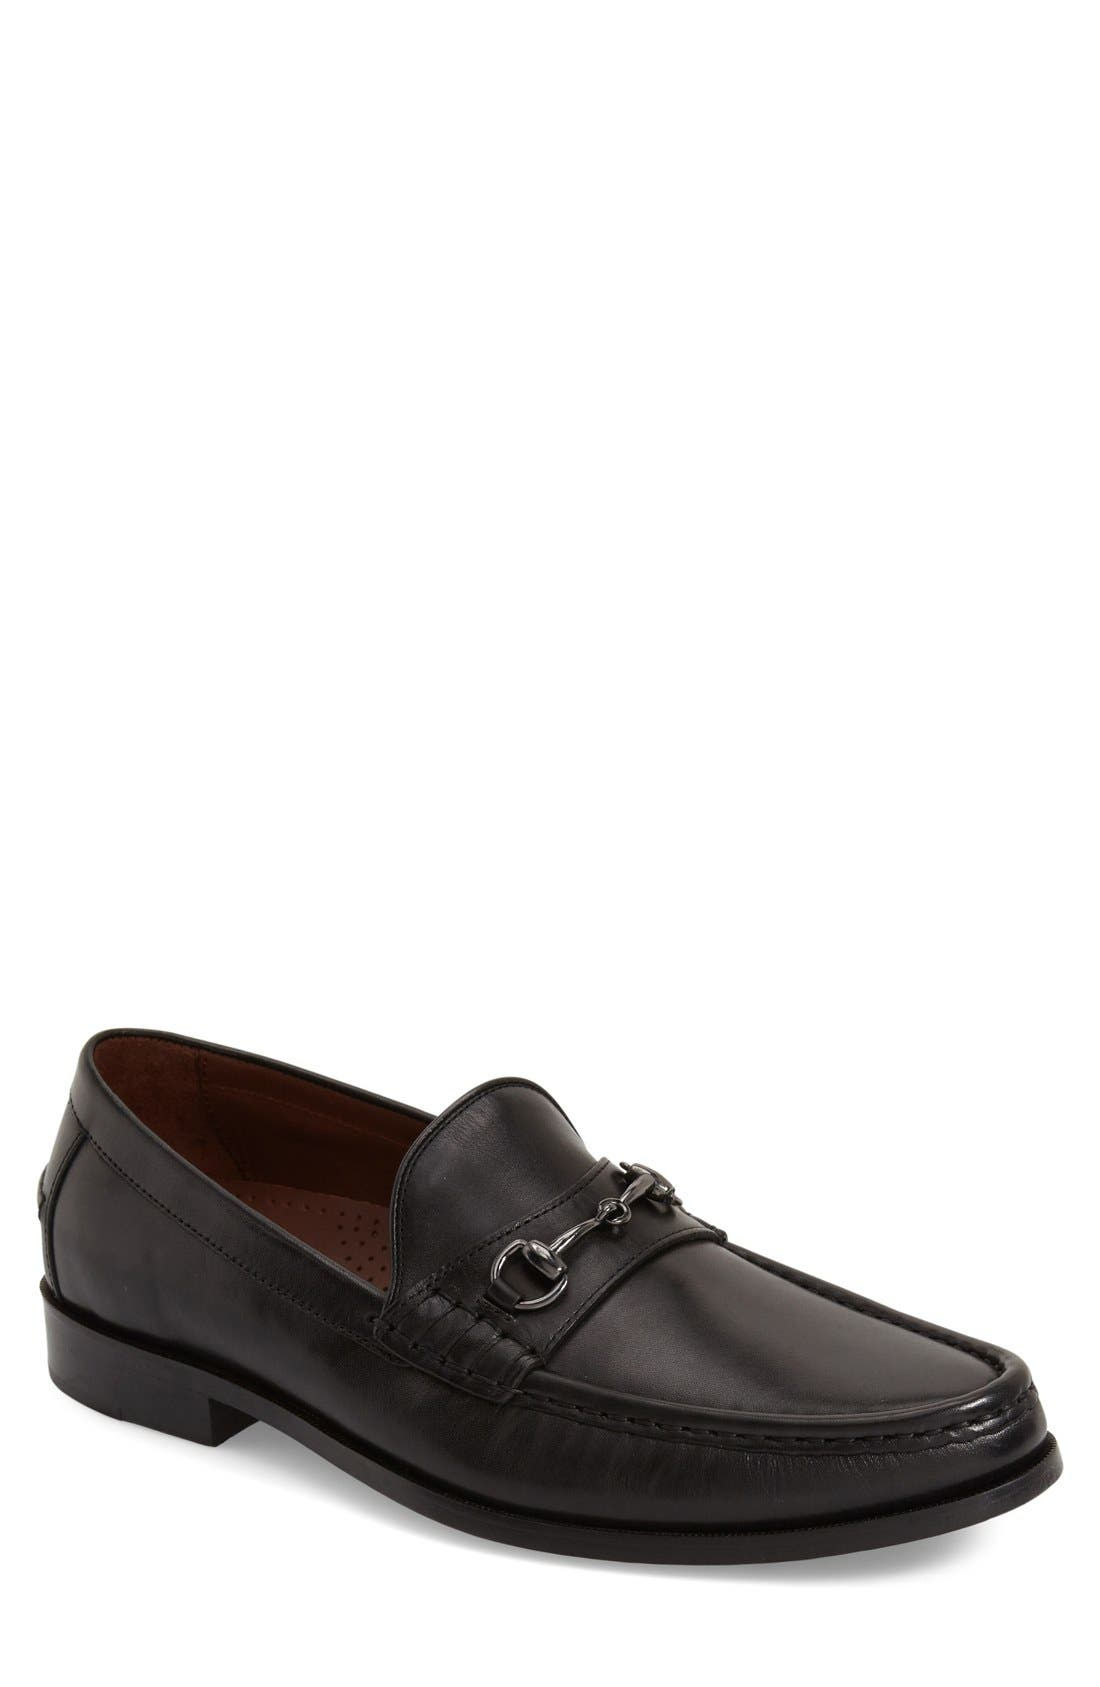 Pinch Gotham Bit Loafer,                             Main thumbnail 1, color,                             Black Leather